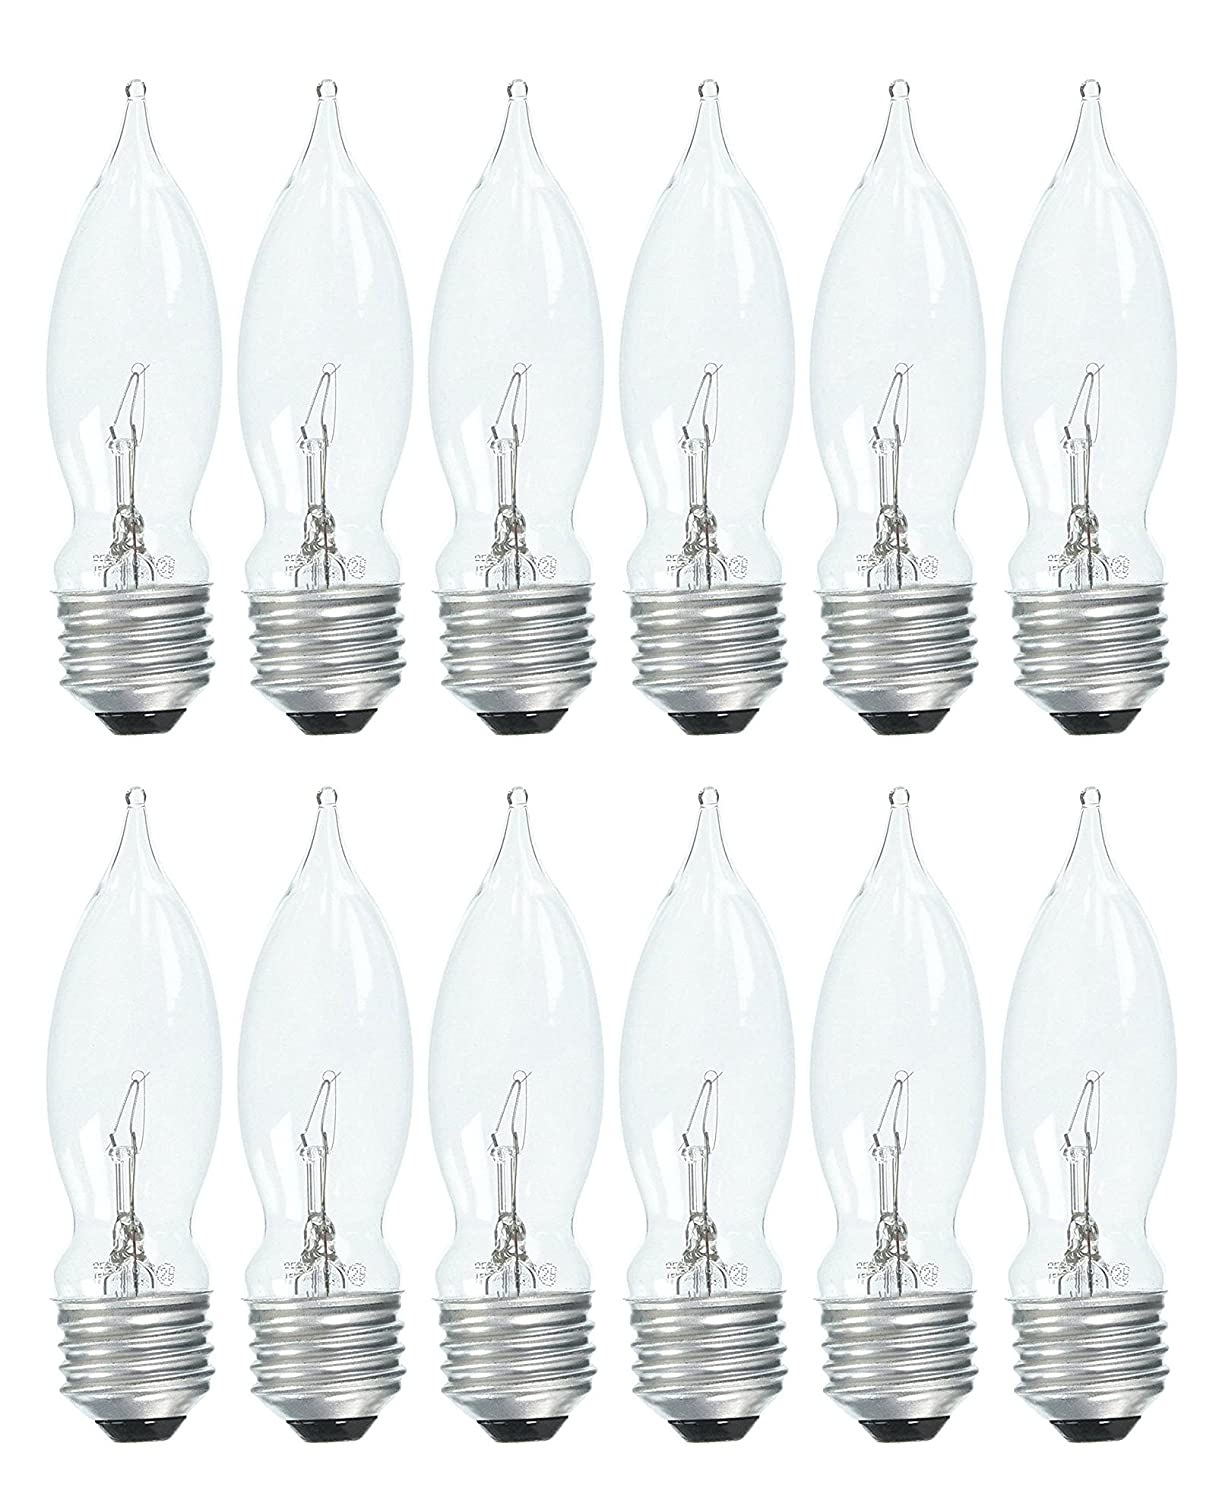 Set of 12 GE 75333 Crystal Clear 40 Watt Bent Tip Standard Base Light Bulbs!